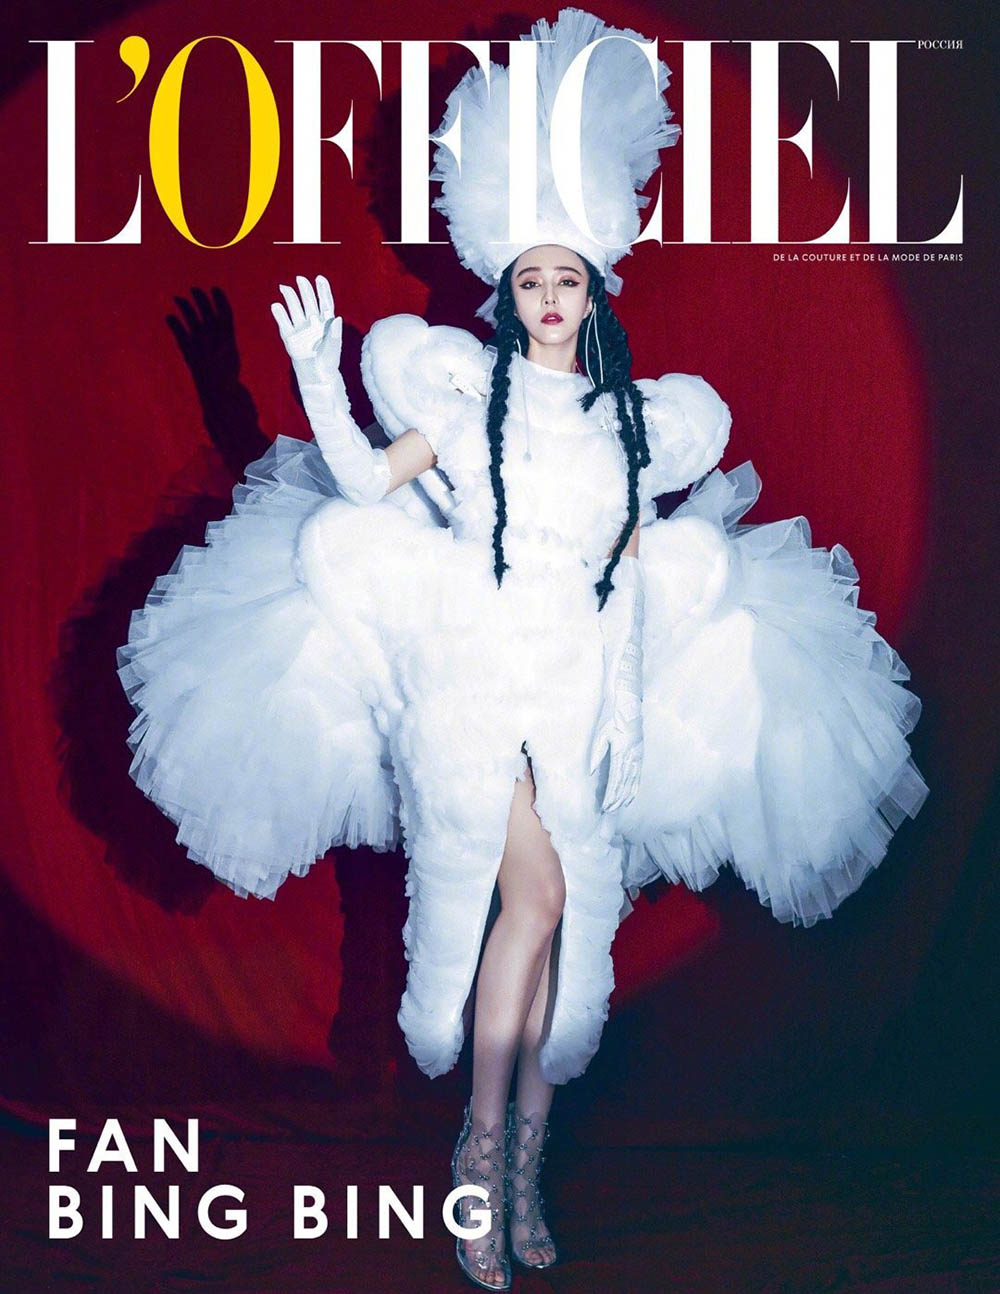 Fan Bingbing covers L'Officiel Russia December 2019 Digital Edition by Dalong Yang